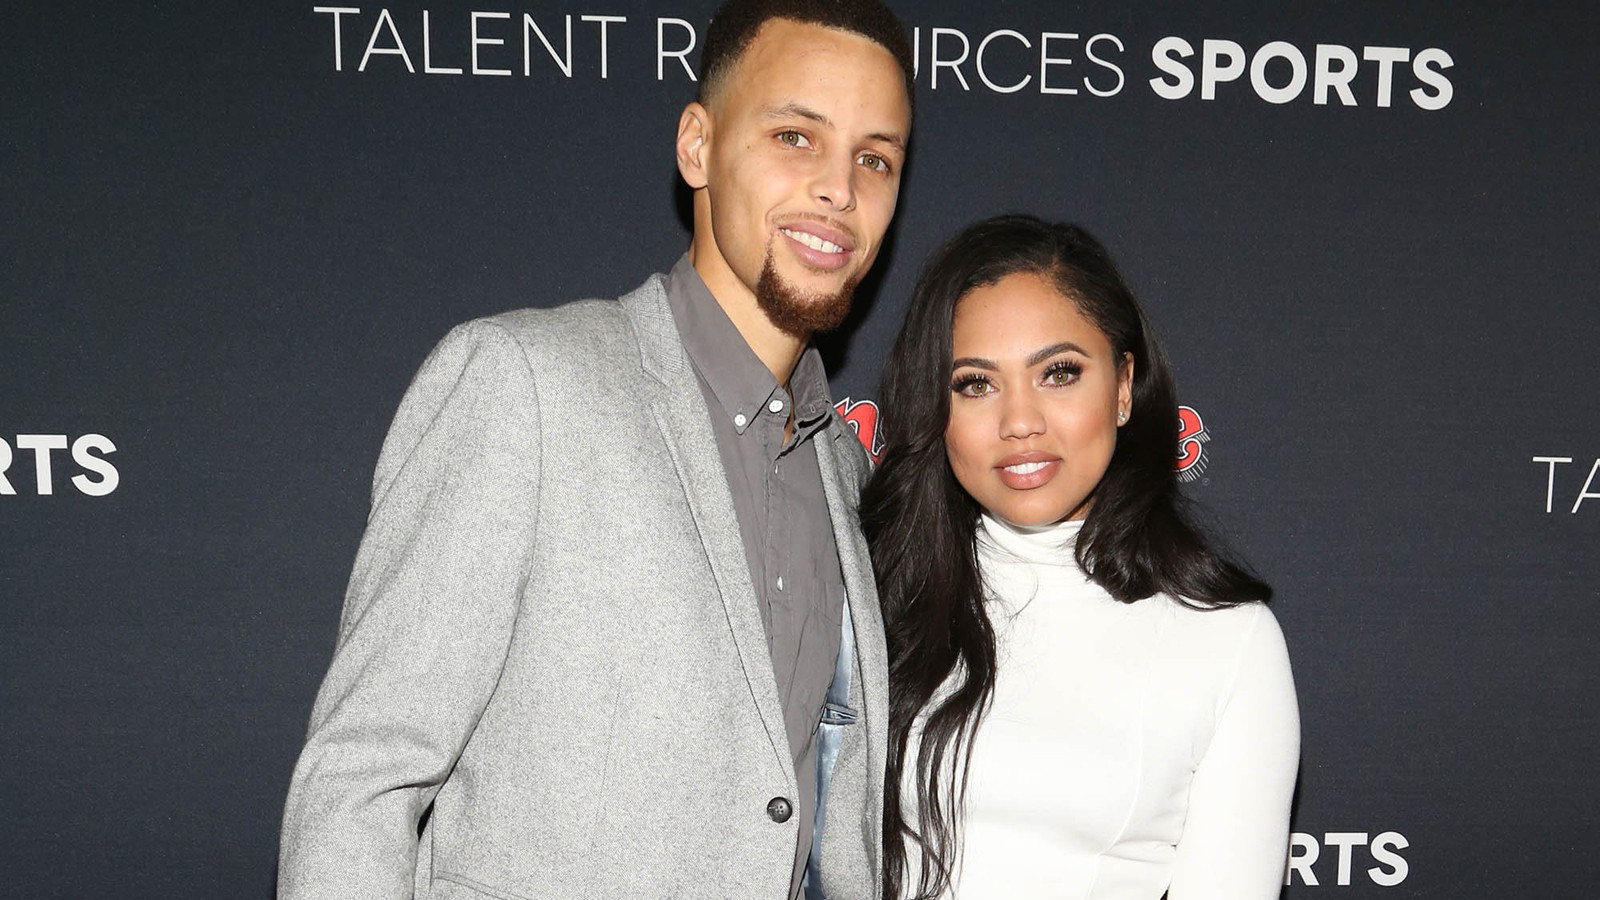 Stephen curry wedding photos wedding photography take a look inside steph and ayesha curry s 6th wedding anniversary junglespirit Choice Image